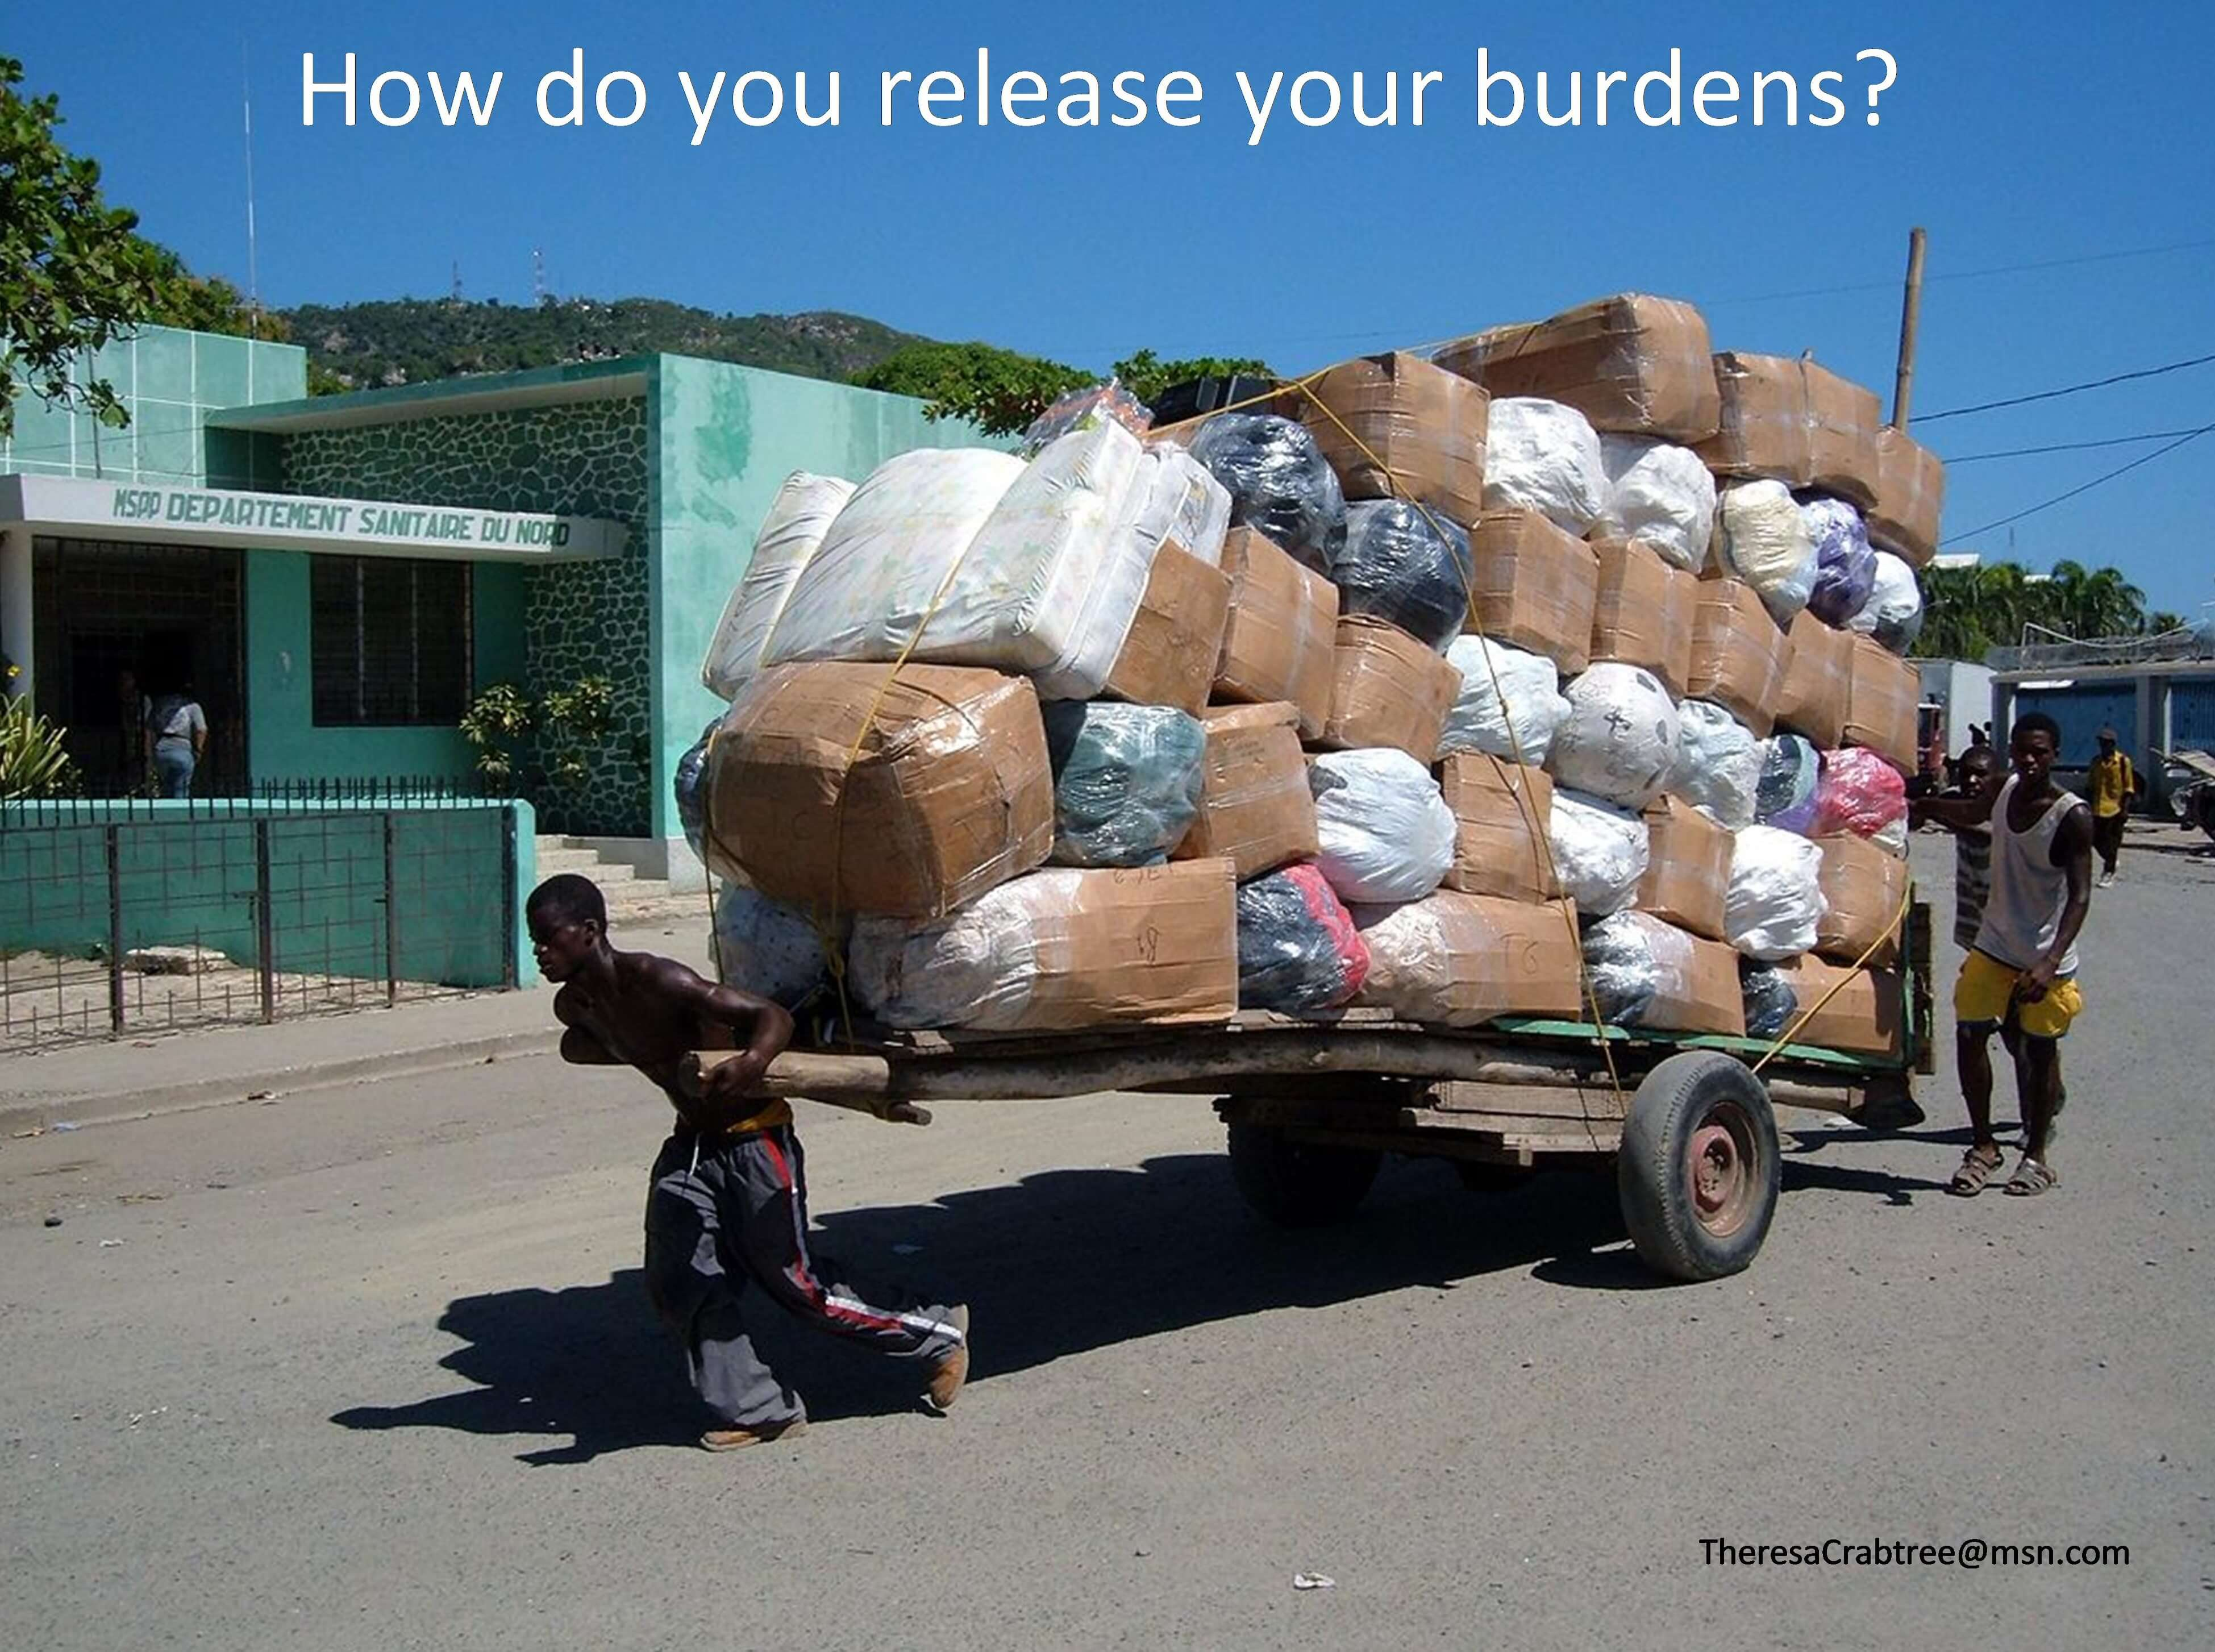 When life's burdens are getting you down, how do you release them?